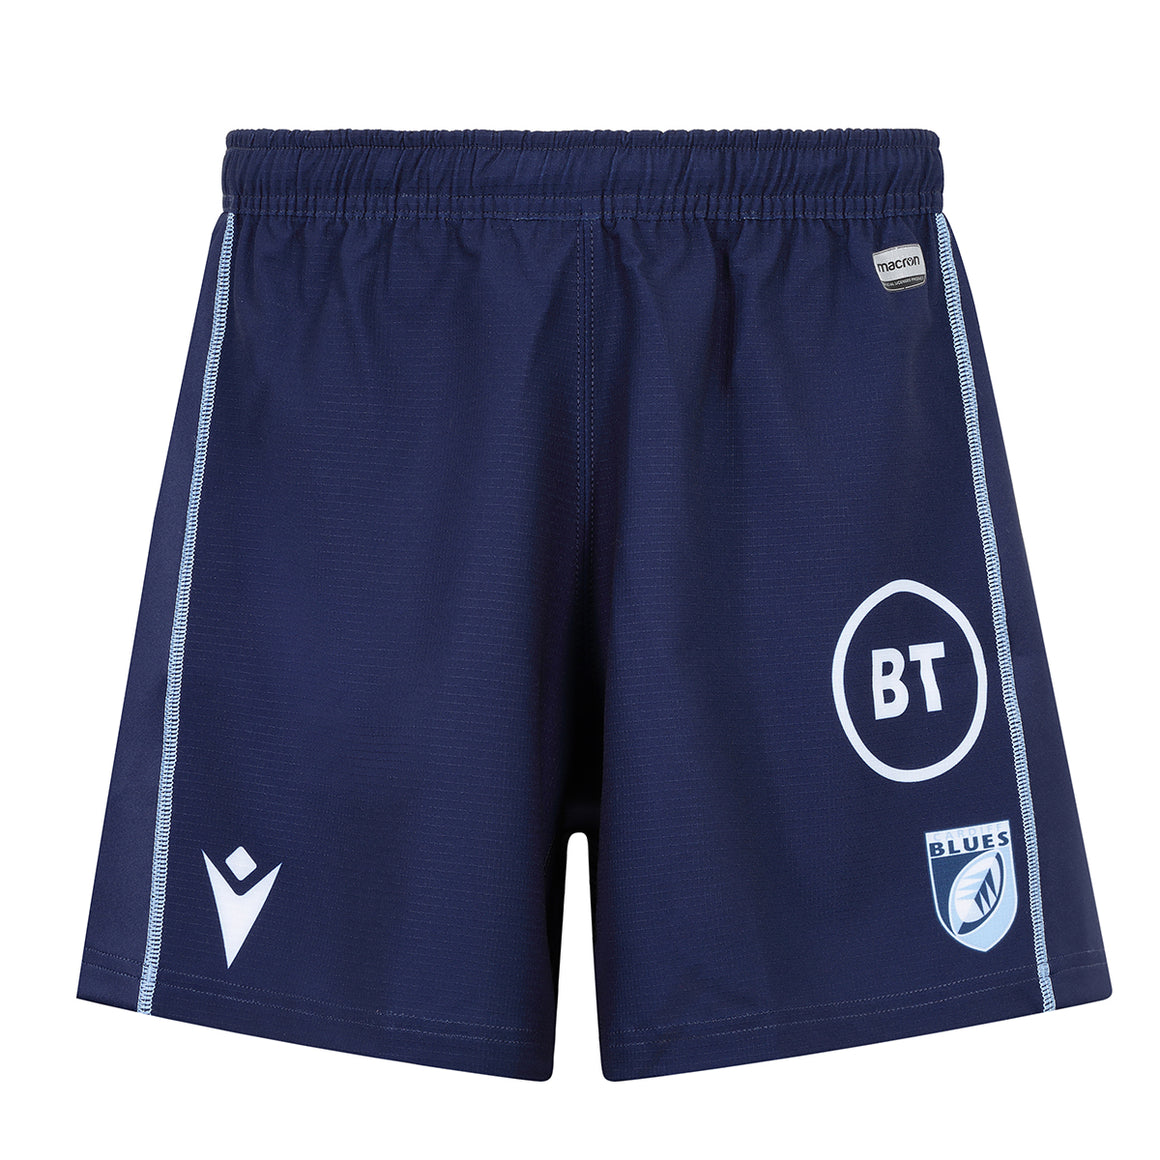 Replica Home Shorts Junior 19/20